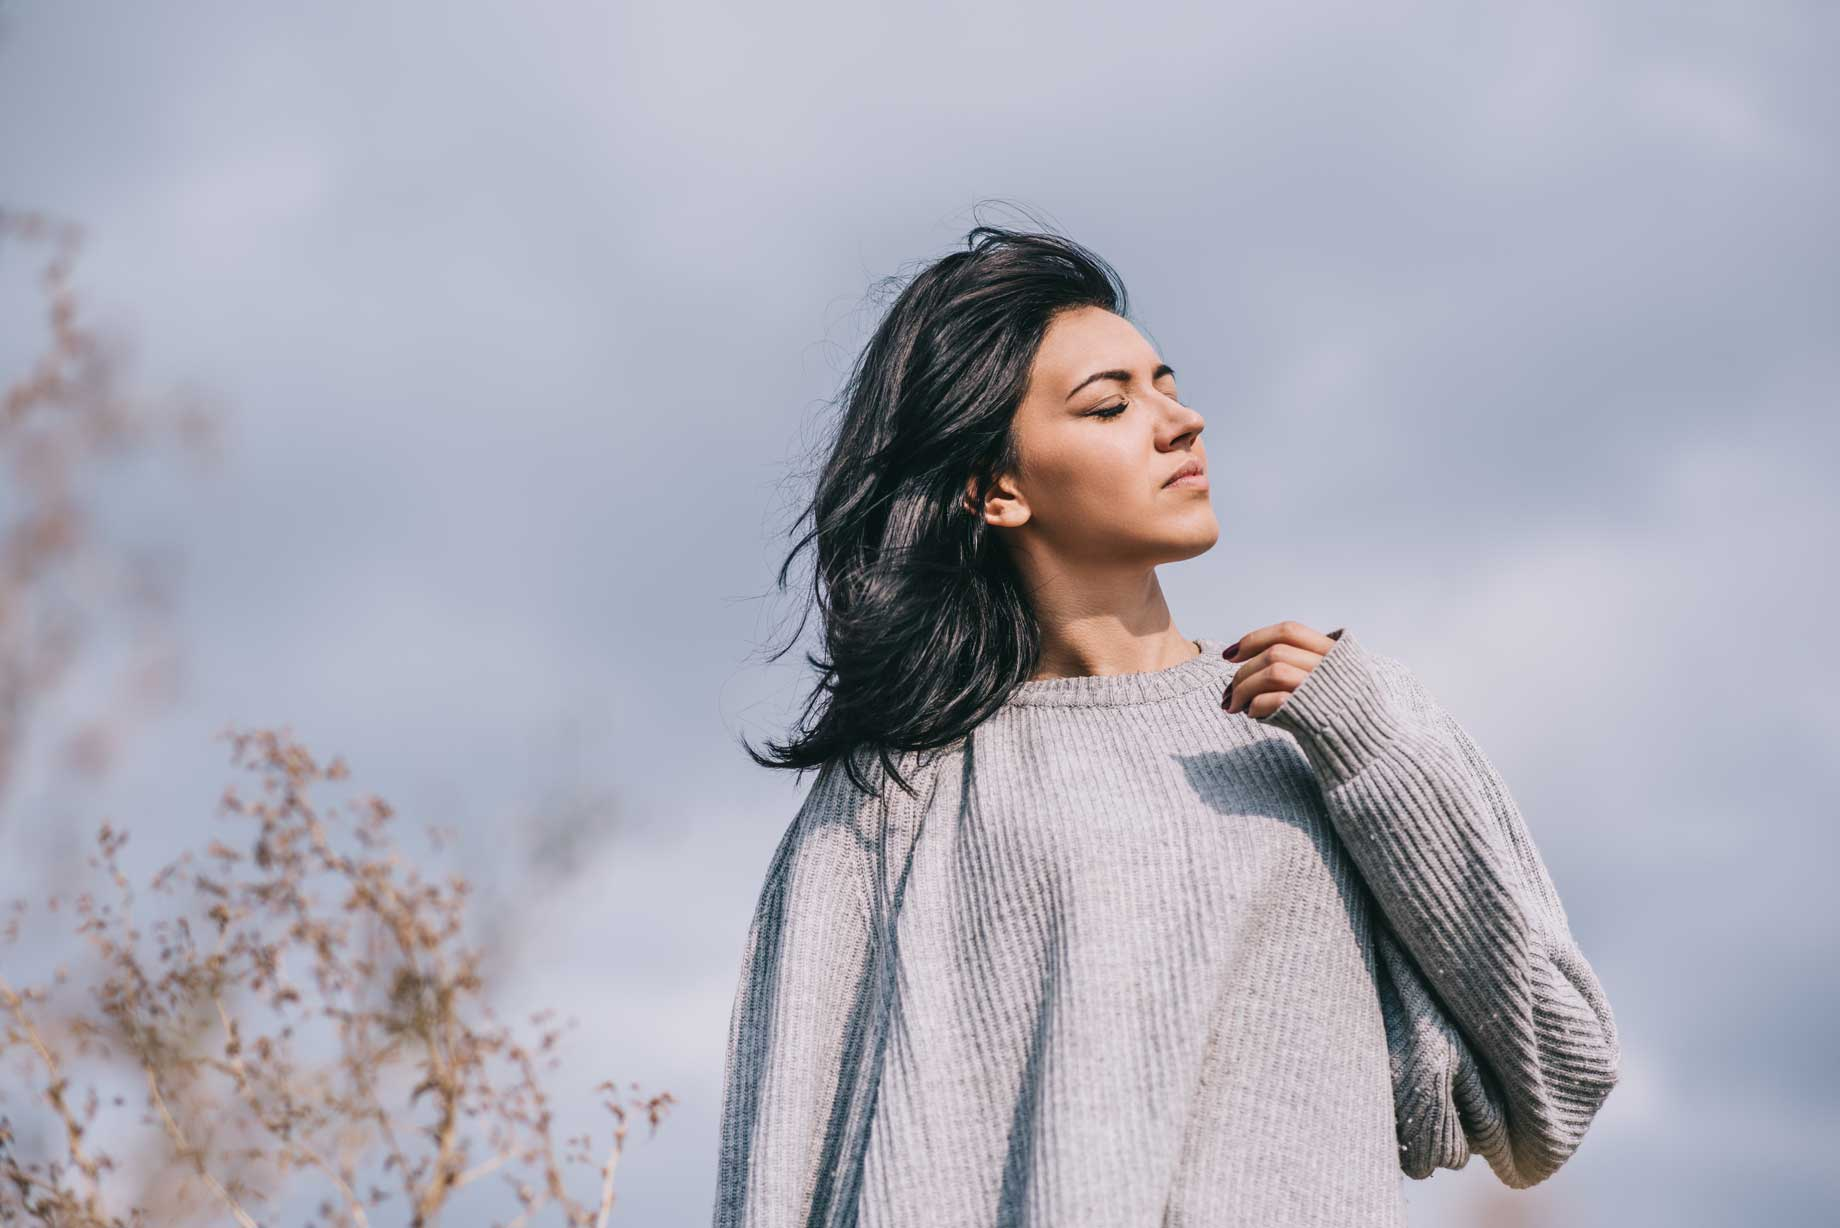 Women outside enjoying the wind | Chemical Peel Skin Health